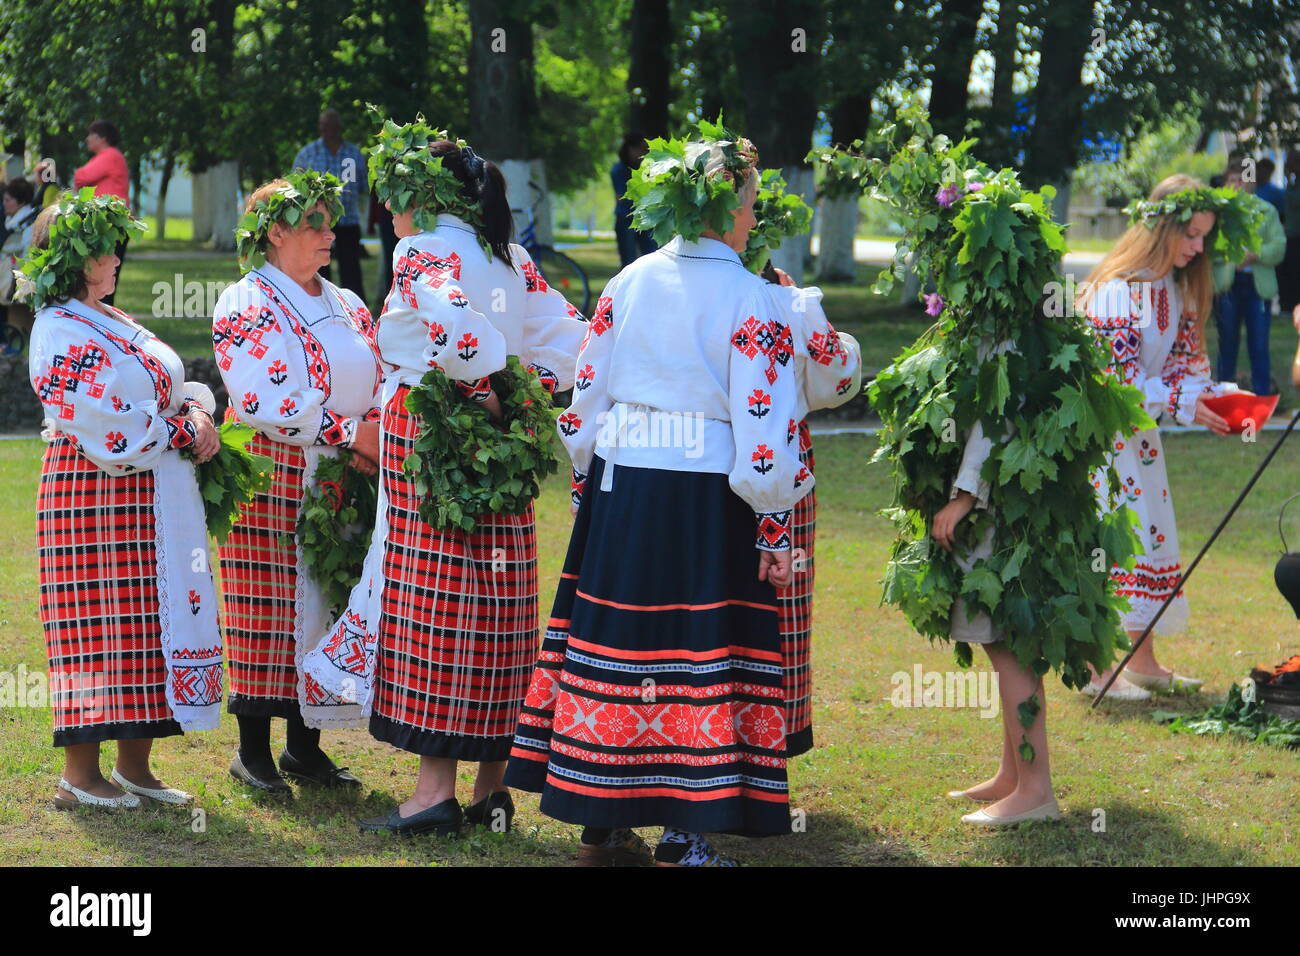 Celebrating the day of Pentecost in the village (agro-town) - Stock Image